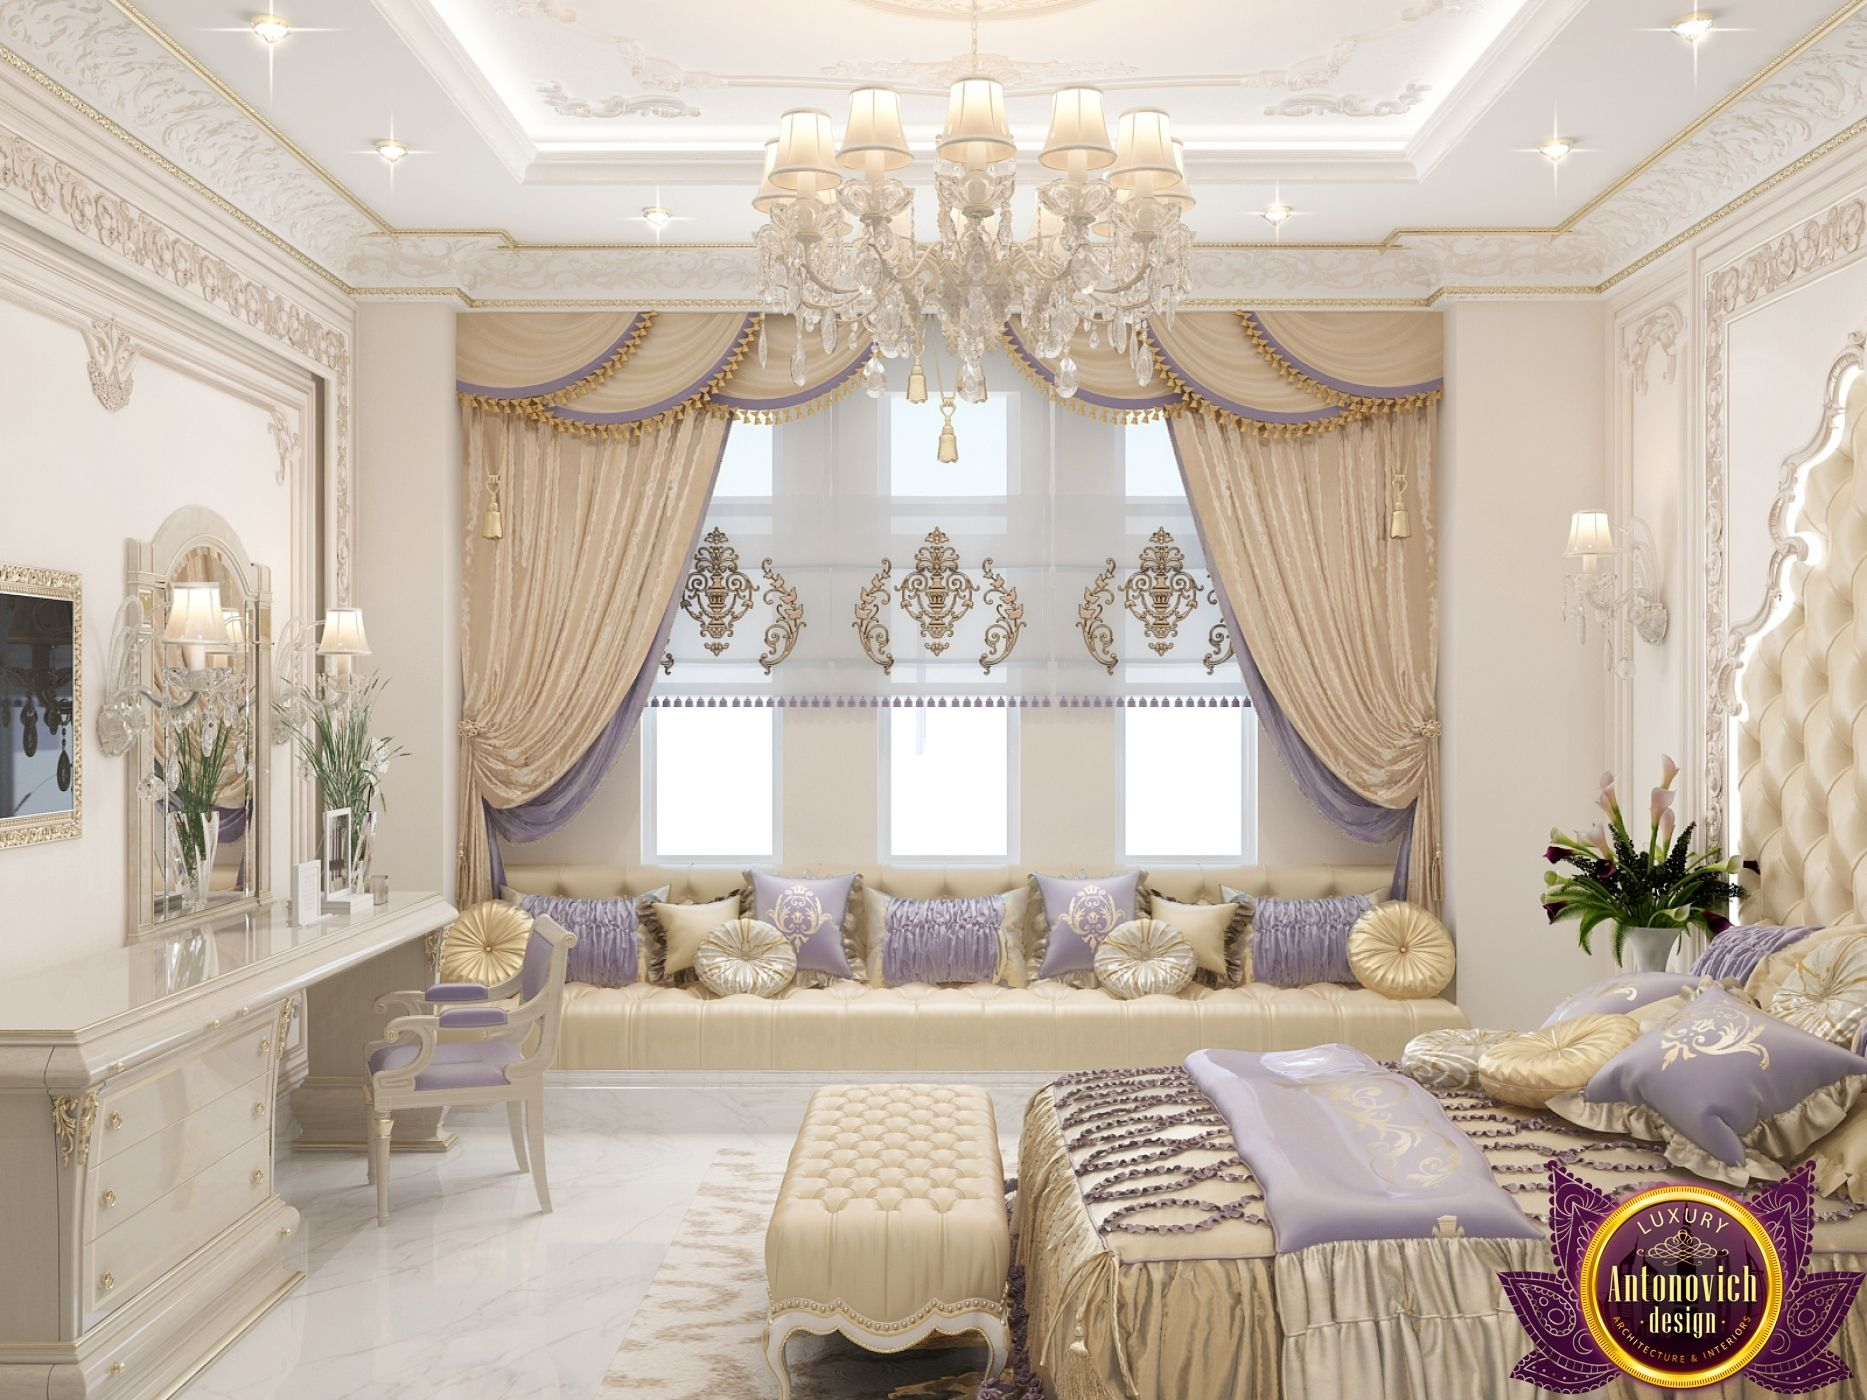 Best Bedroom Design In Dubai Luxury Bedroom Photo 2 400 x 300